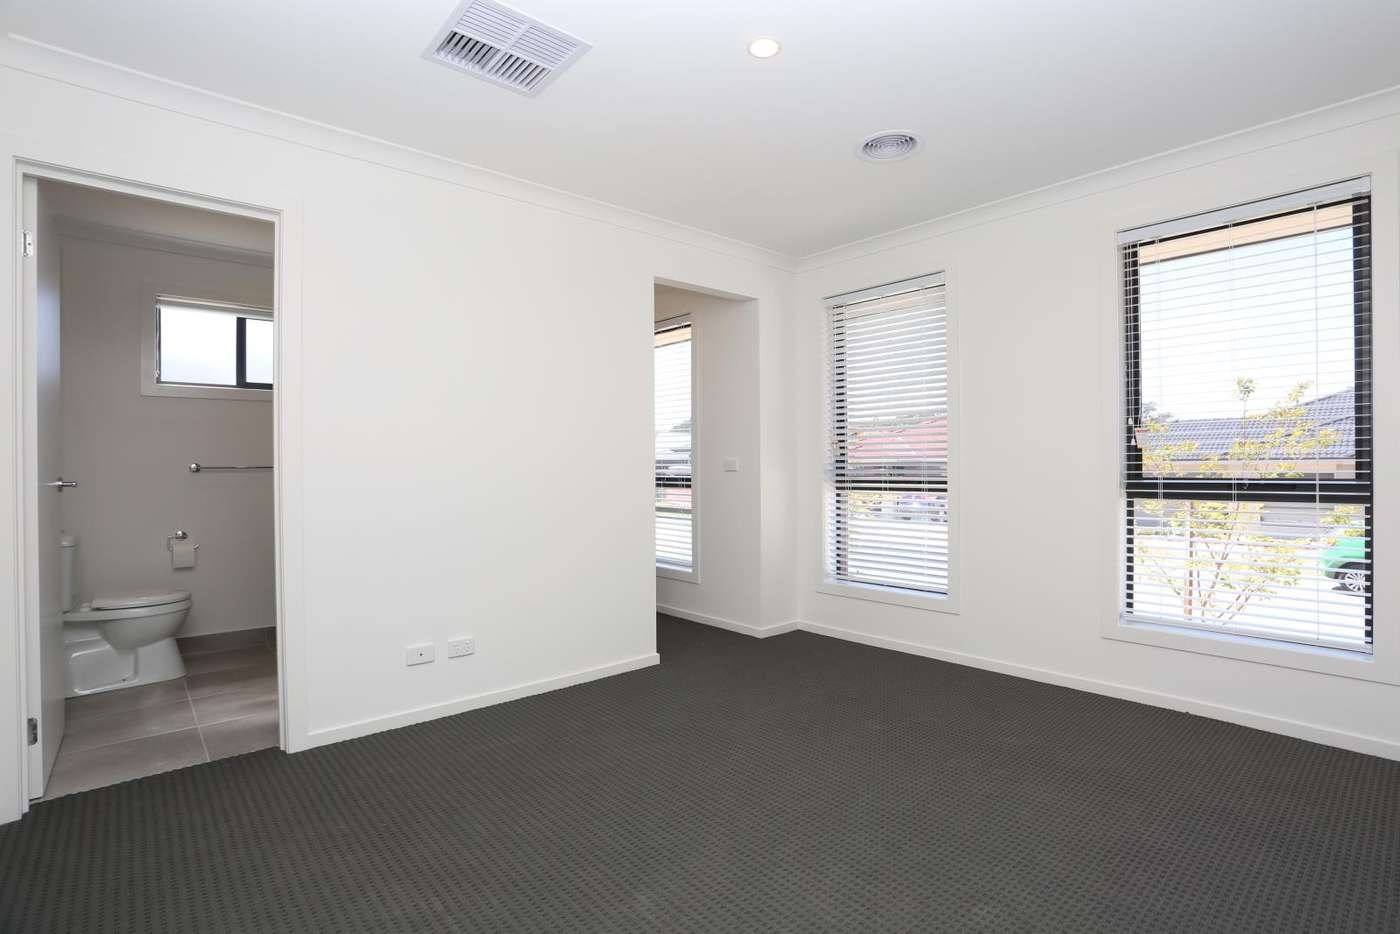 Fifth view of Homely house listing, 16 Oliver Street, Doreen VIC 3754